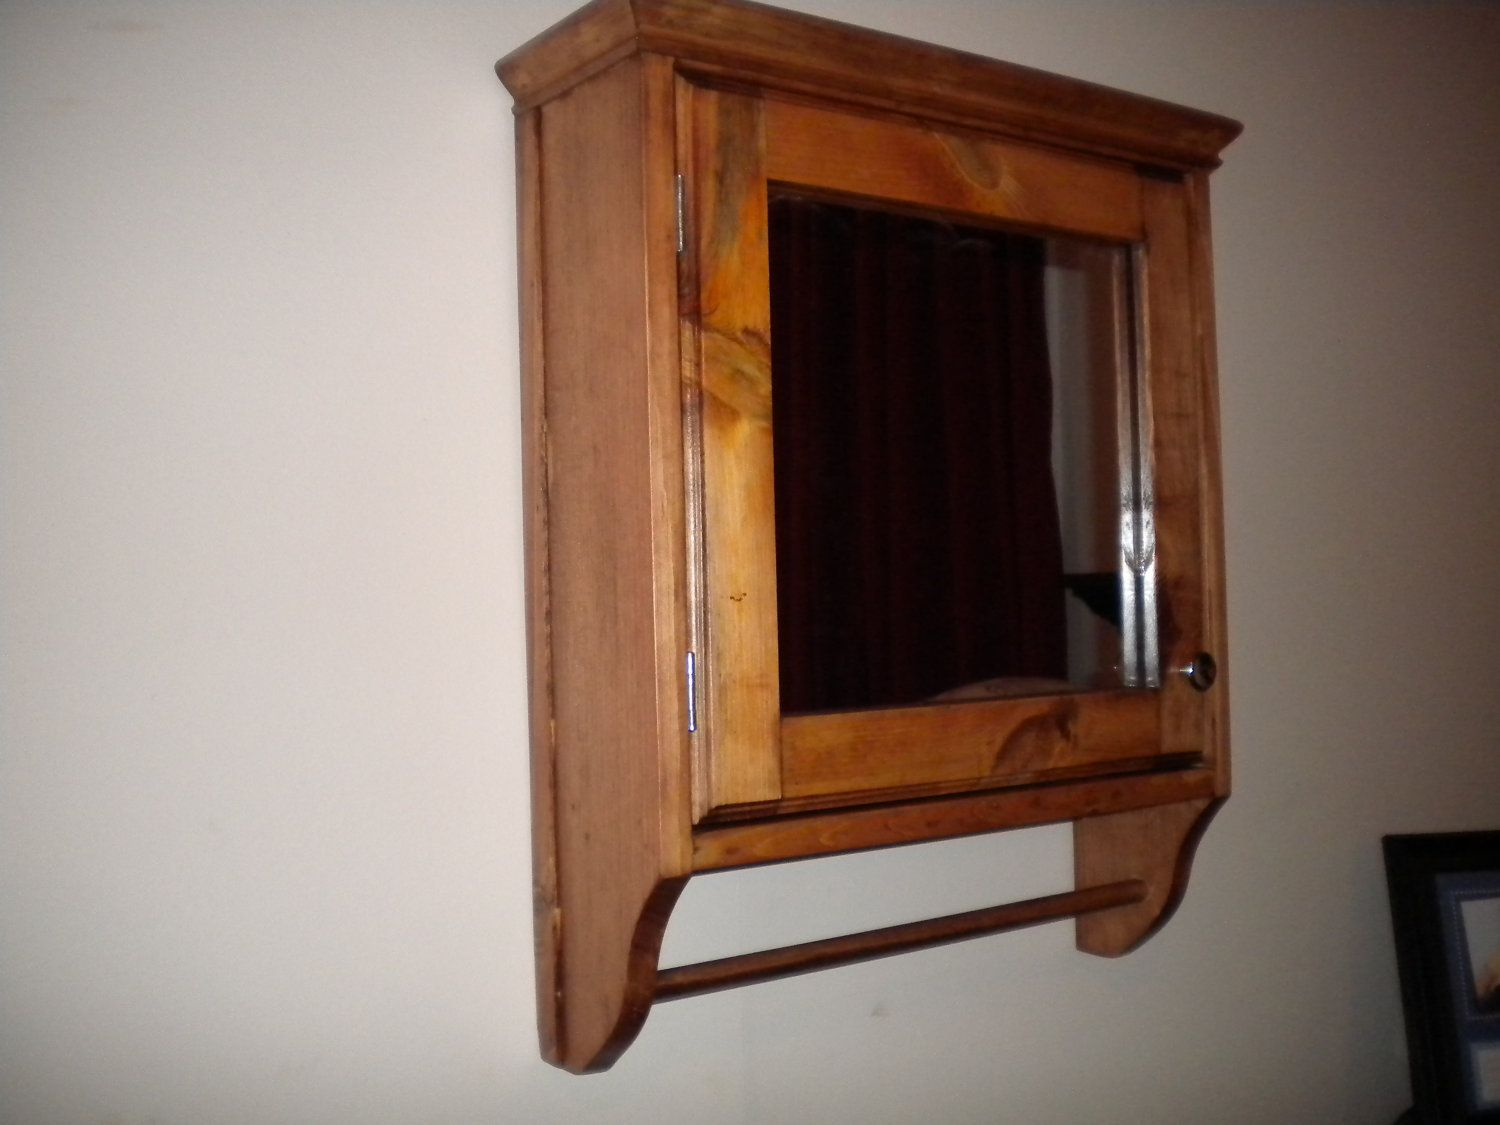 antique wood medicine cabinet with mirror - Google Search - Antique Wood Medicine Cabinet With Mirror - Google Search Coffee